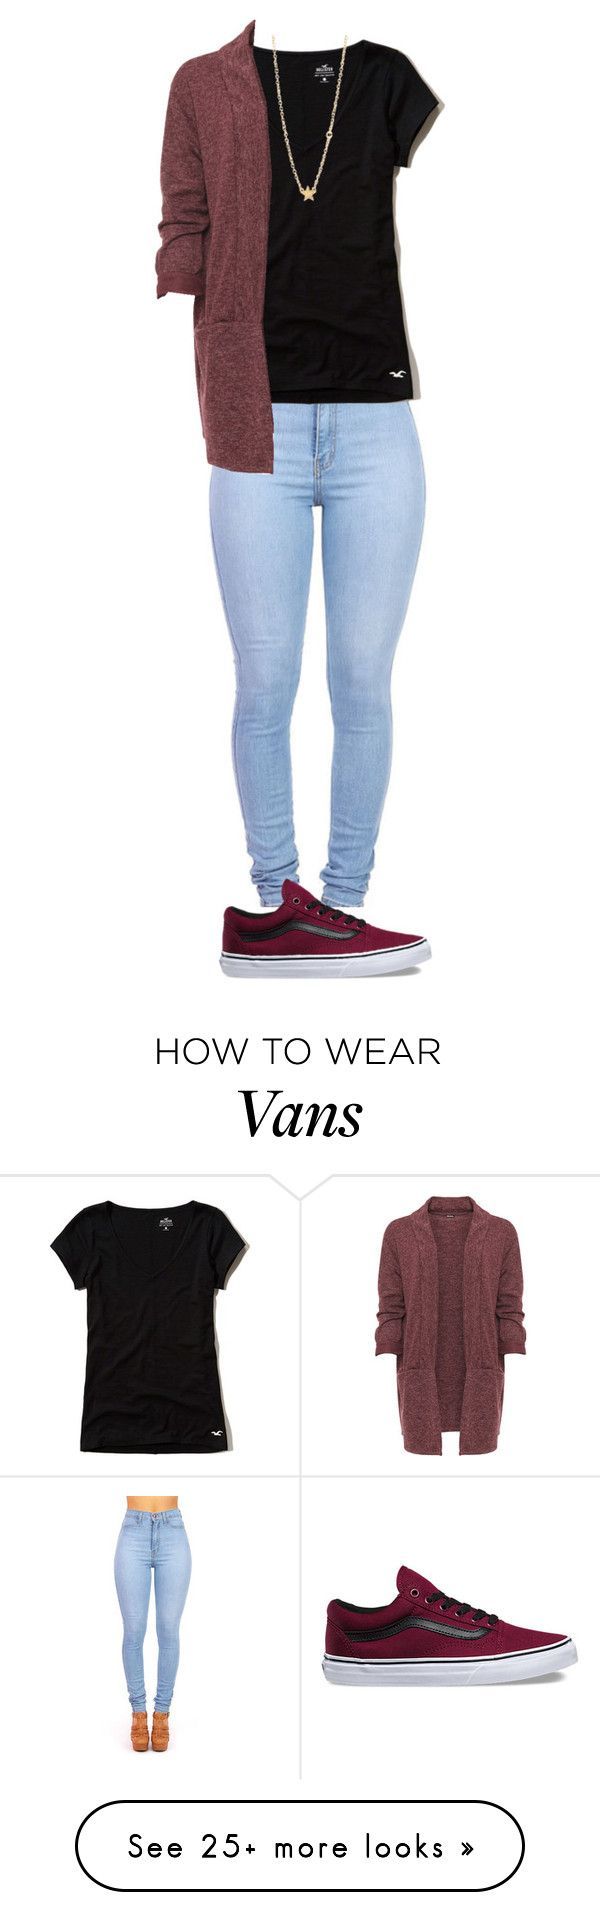 """Sin título #289"" by user-in-31 on Polyvore featuring Hollister Co., Vans, WearAll and Sydney Evan"